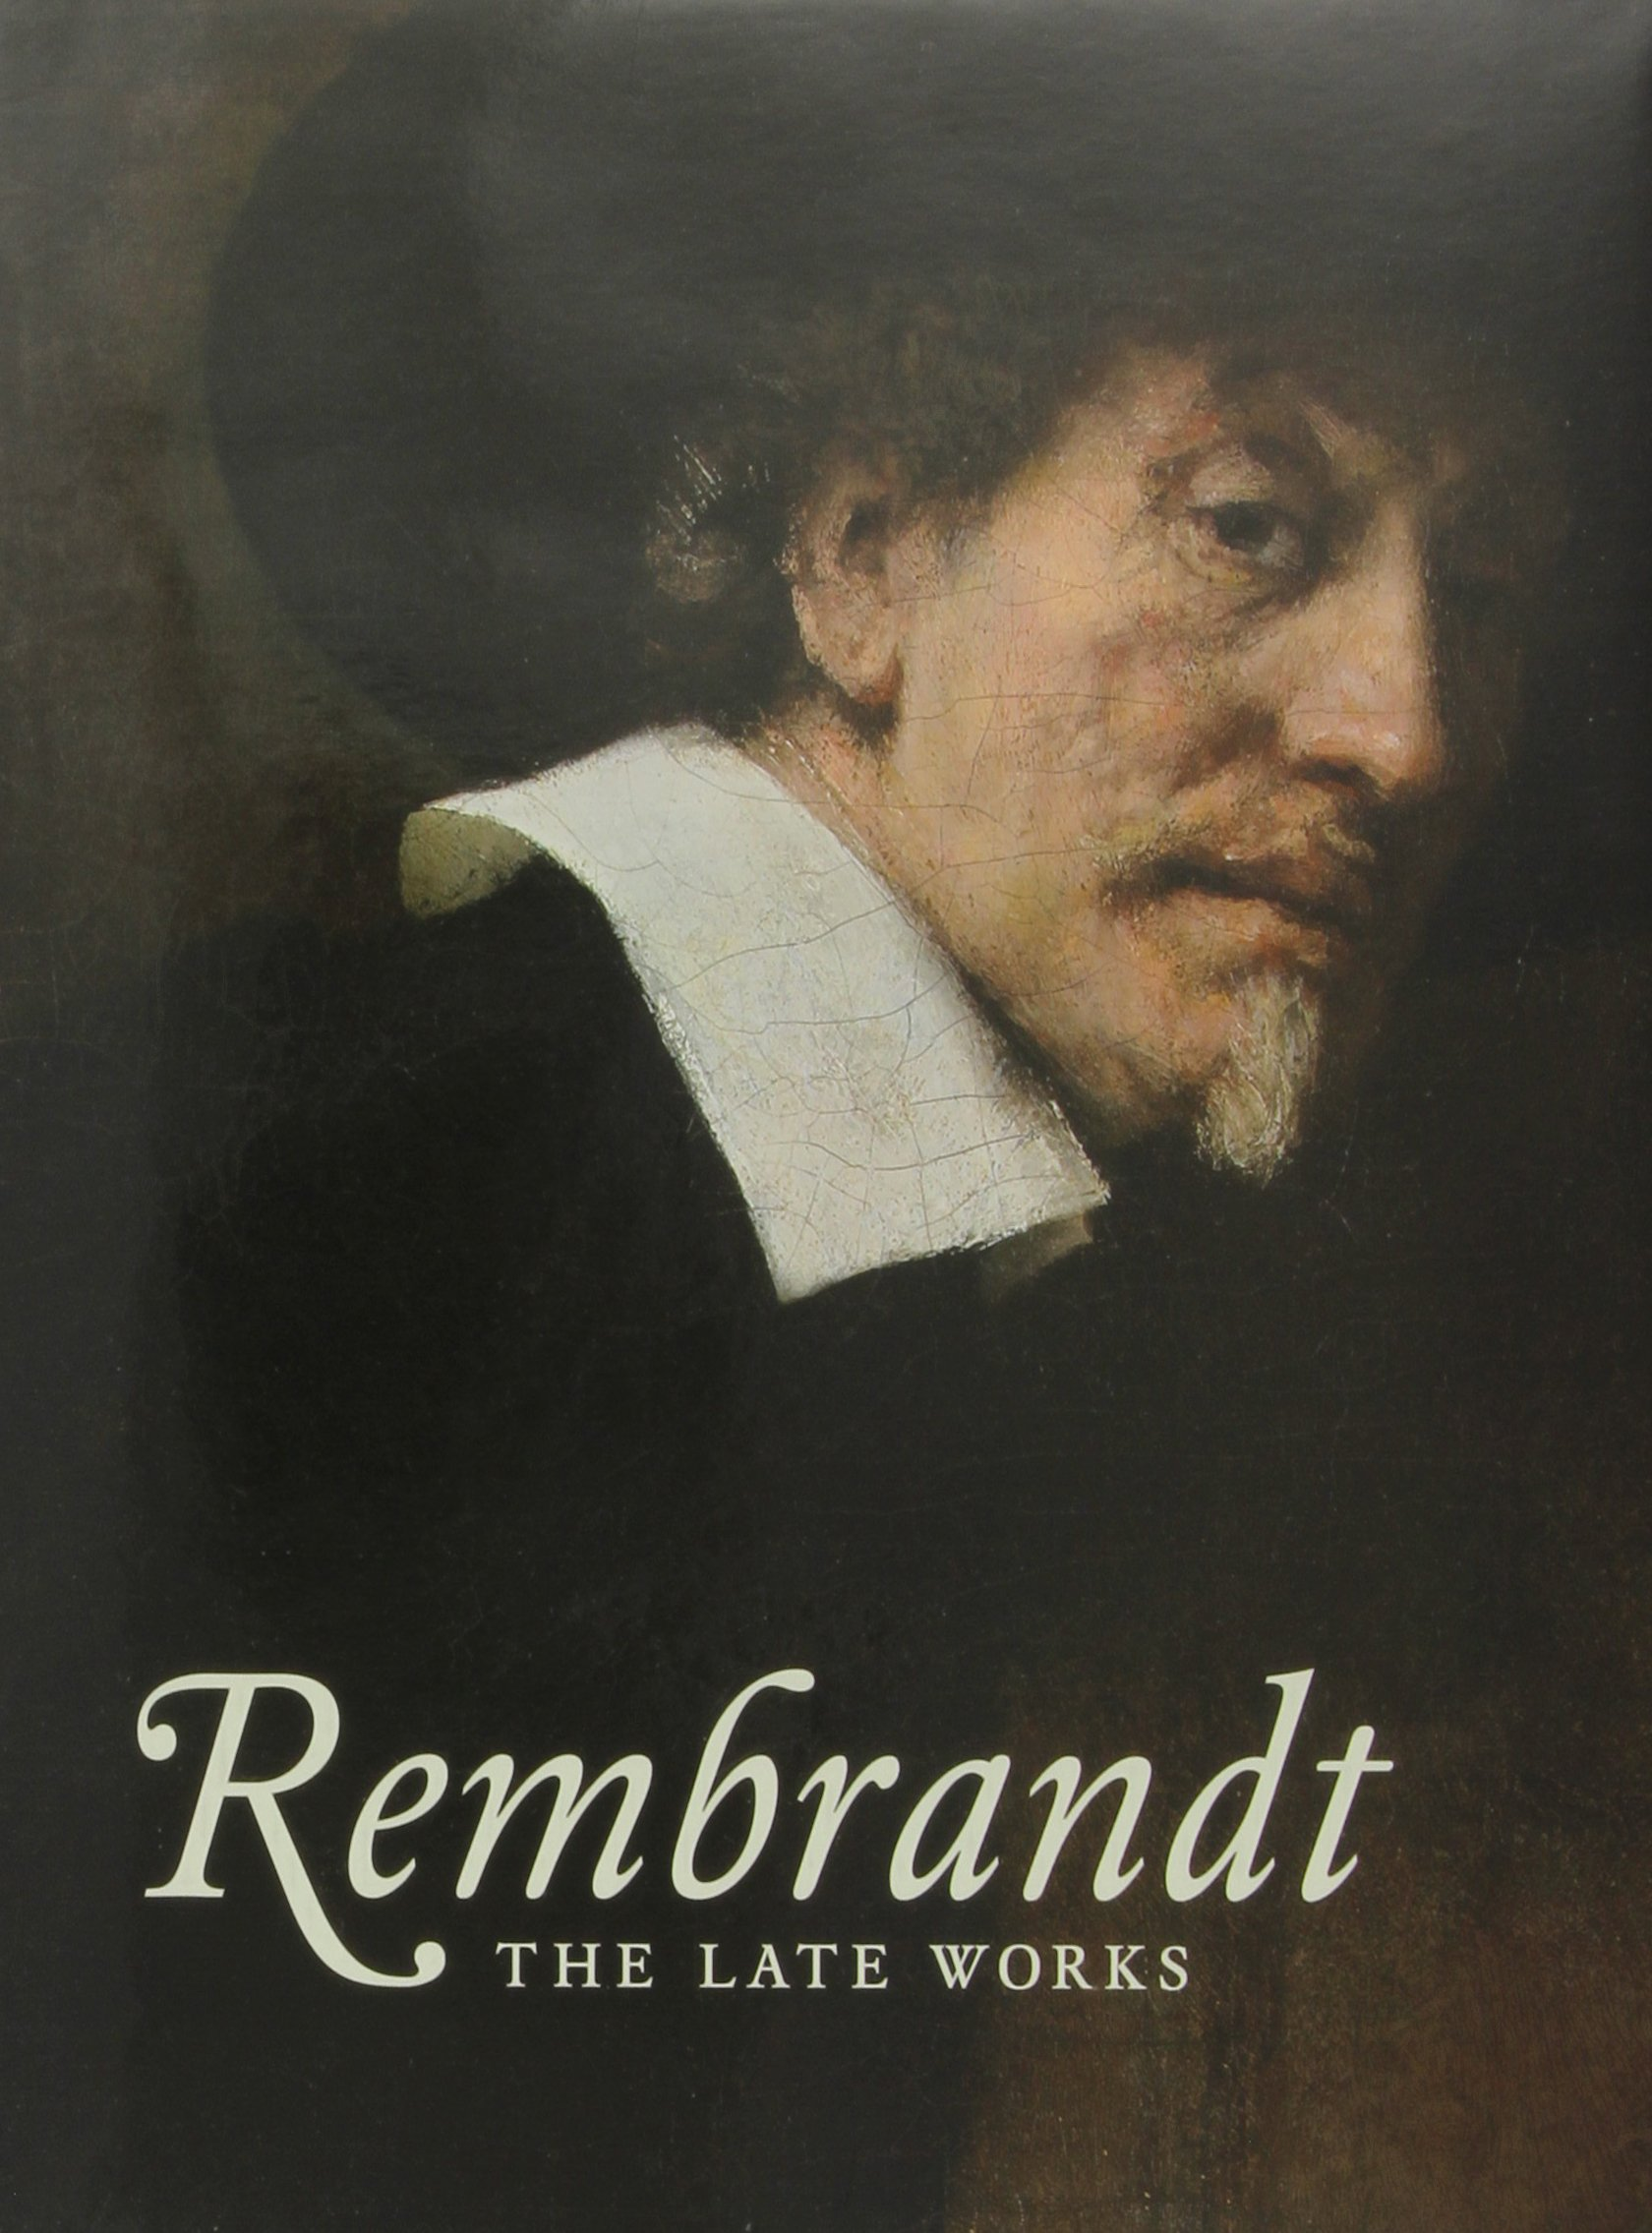 rembrandt the late works national gallery london jonathan rembrandt the late works national gallery london jonathan bikker gregor j m weber erik hinterding marjorie e wieseman marijn schapelhouman